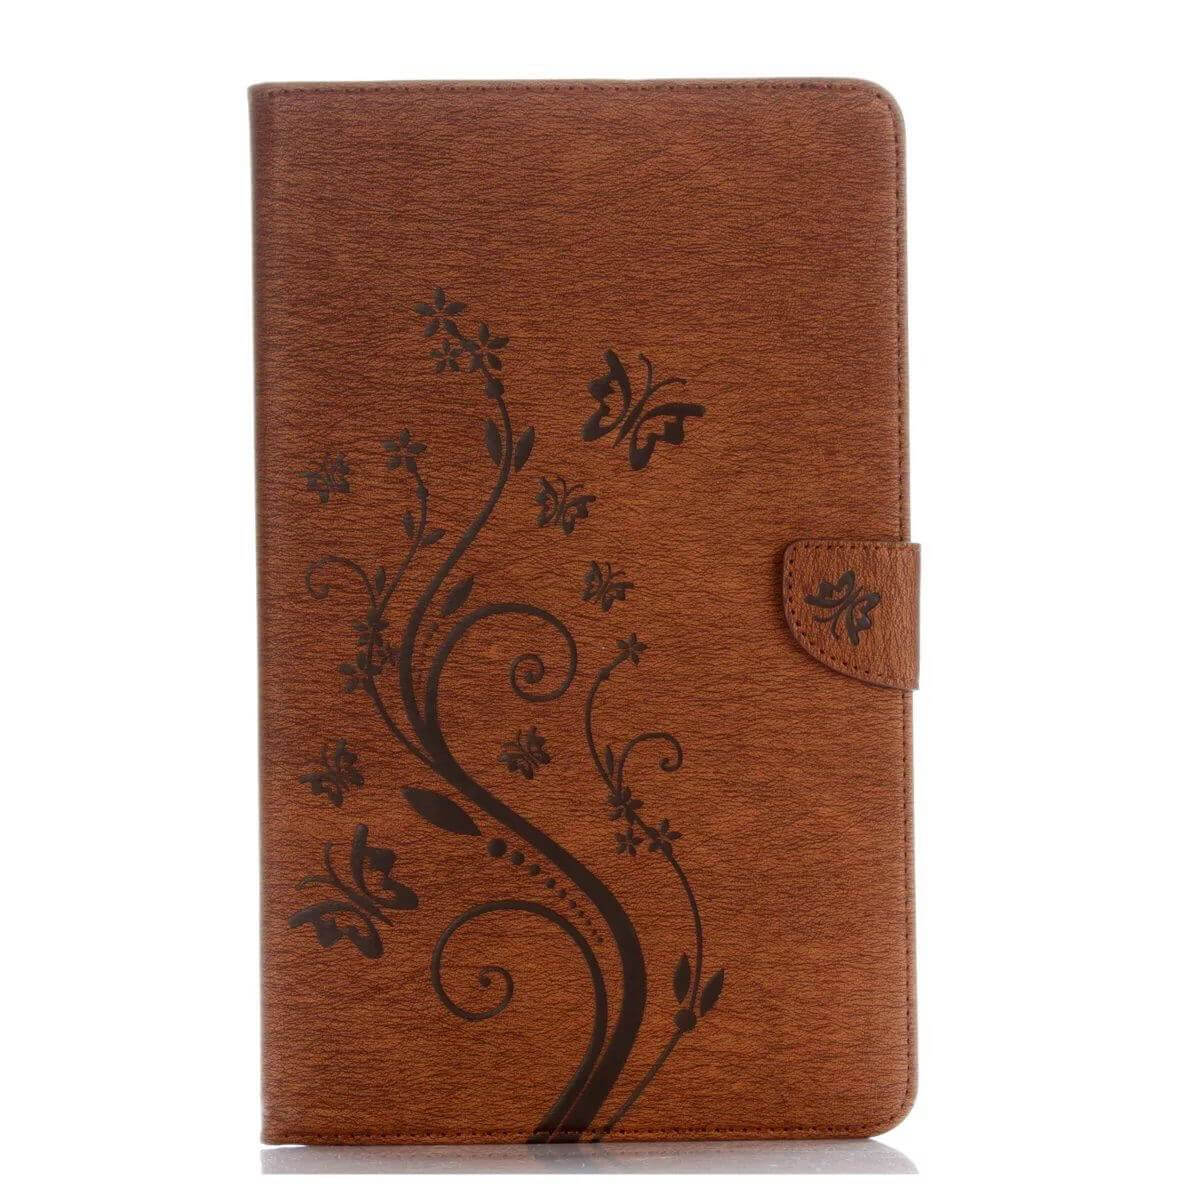 galaxy tab a 10 1 s pen 2016 business multicolor case with monochrome flowers 2 stand and credit card pockets Brown: